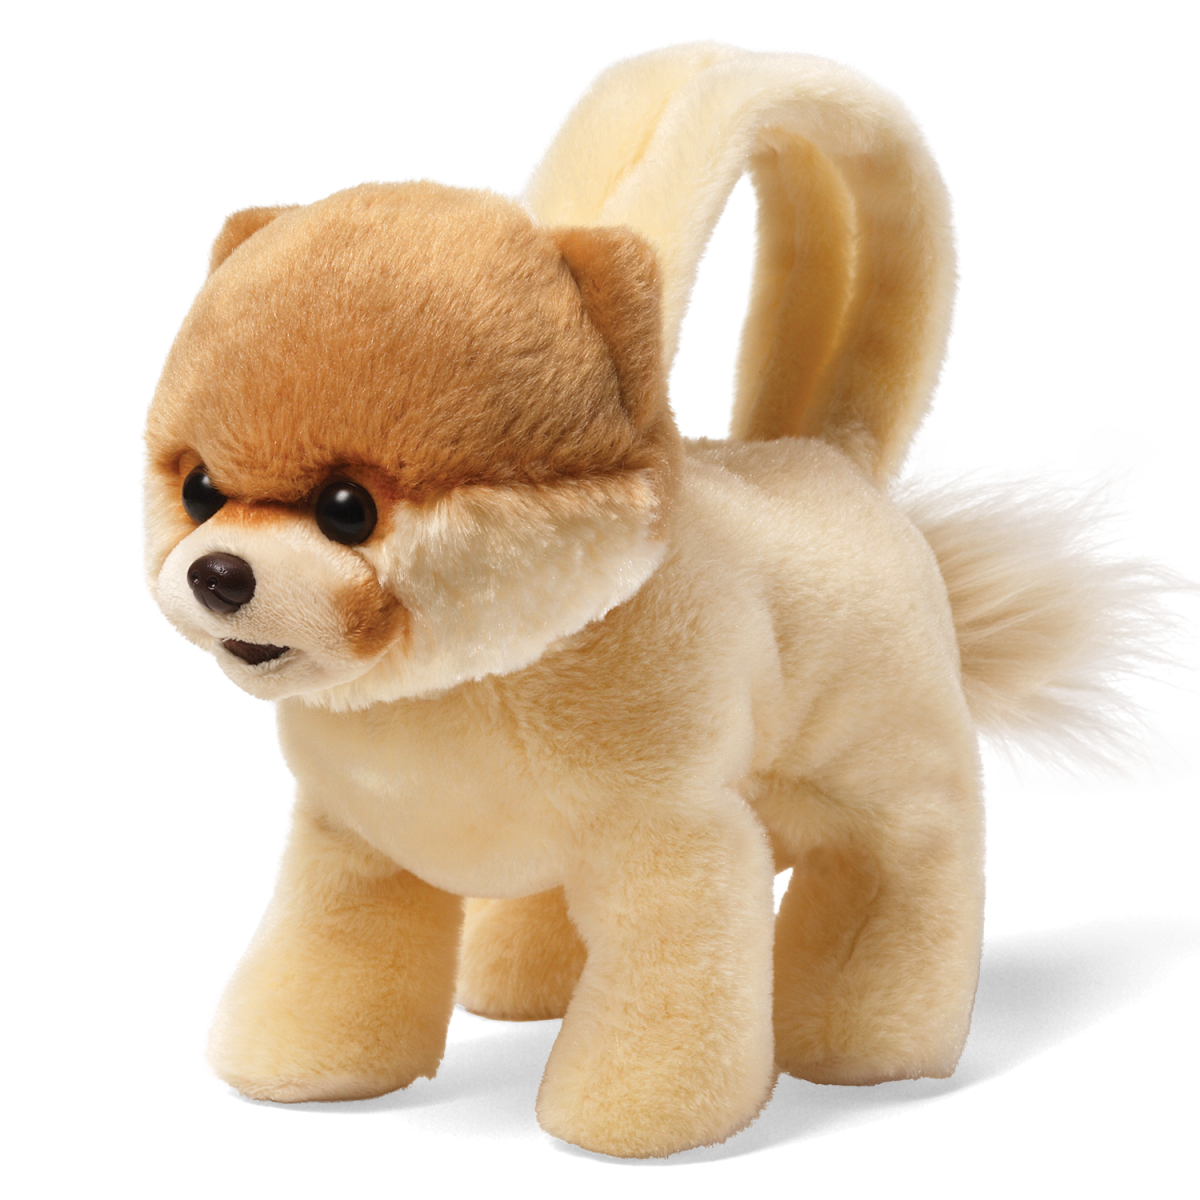 Boo The Dog Png - Download Boo Dog PNG HD - Free Transparent PNG Images, Icons and ...